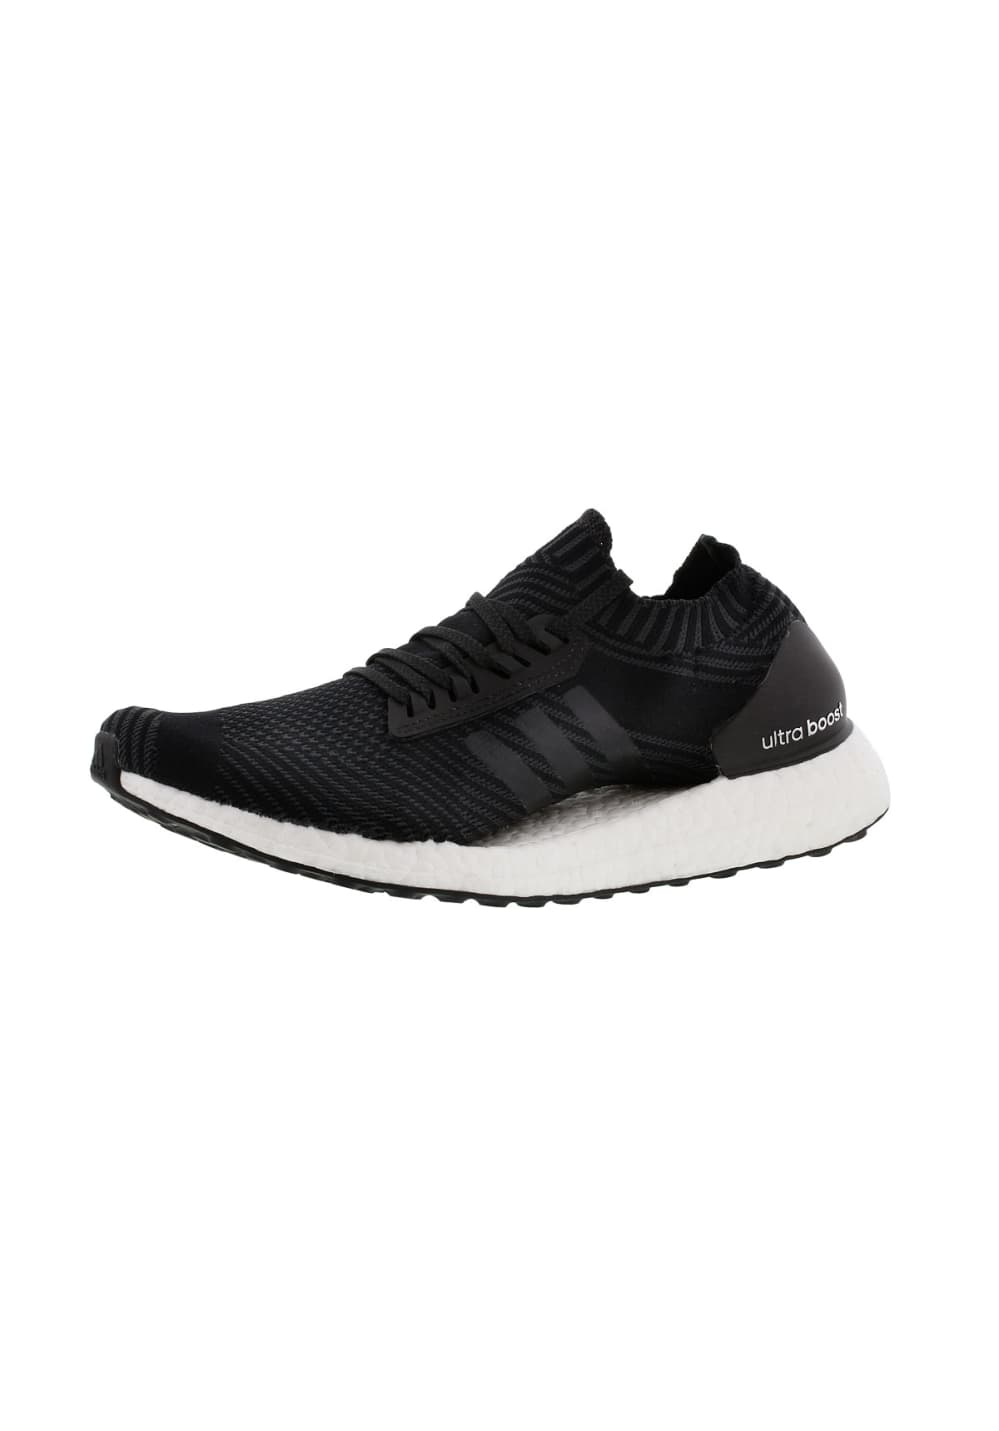 adidas Ultra Boost X - Running shoes for Women - Black  0256cdc58d